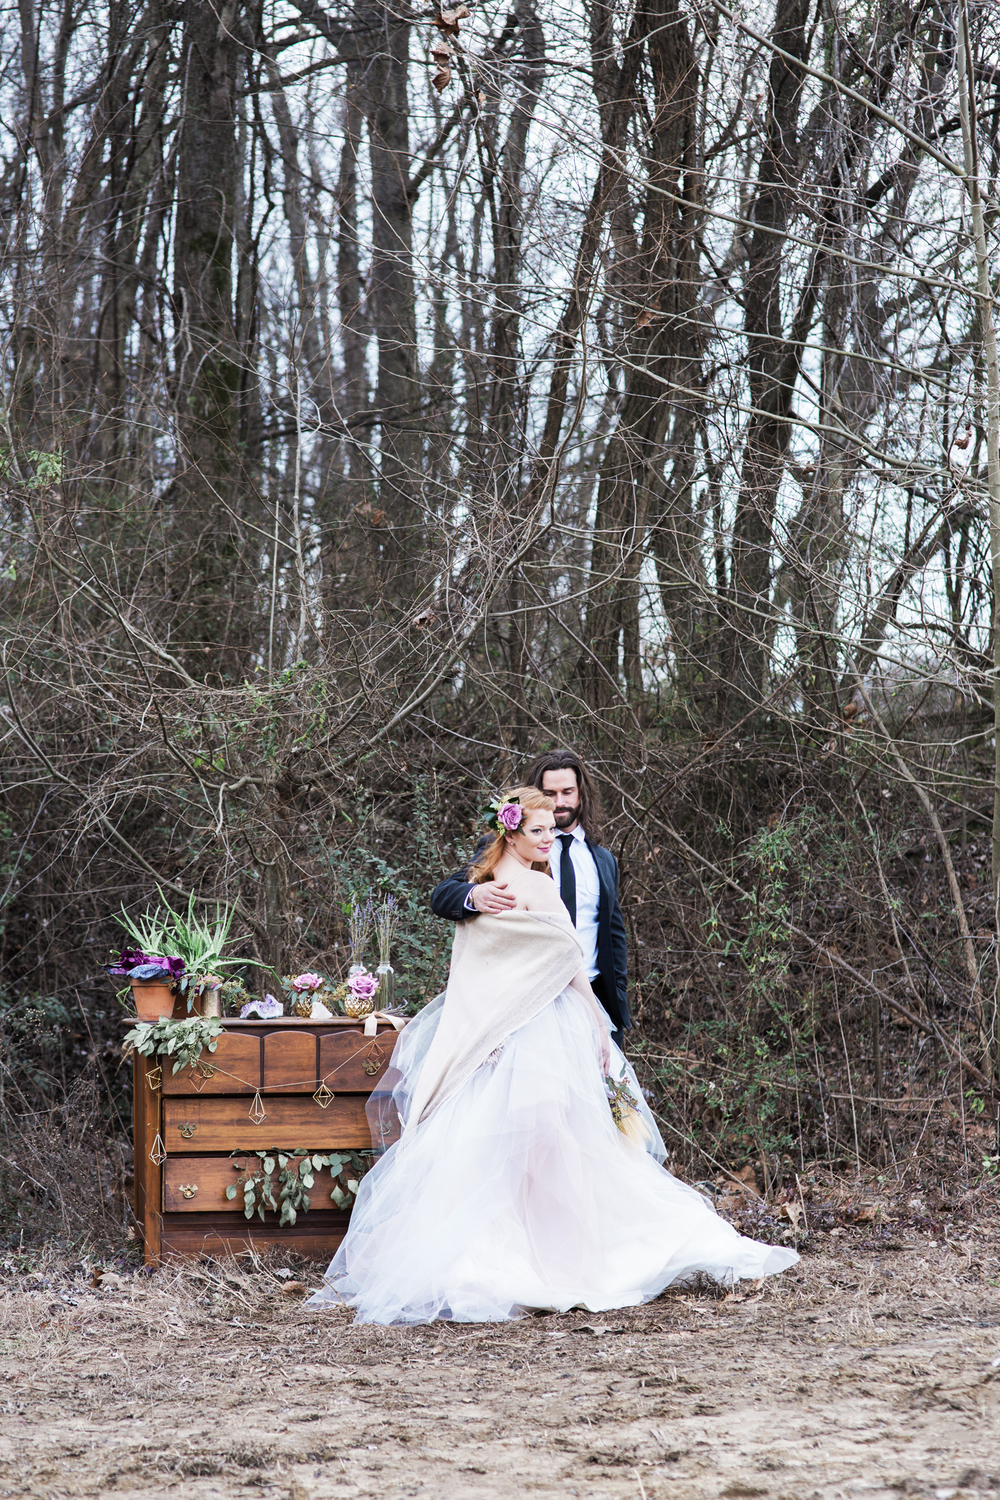 Sara + Matt + Ella _Give Back Bride_Styled Wedding Shoot _K. Stoddard Photography024.jpg